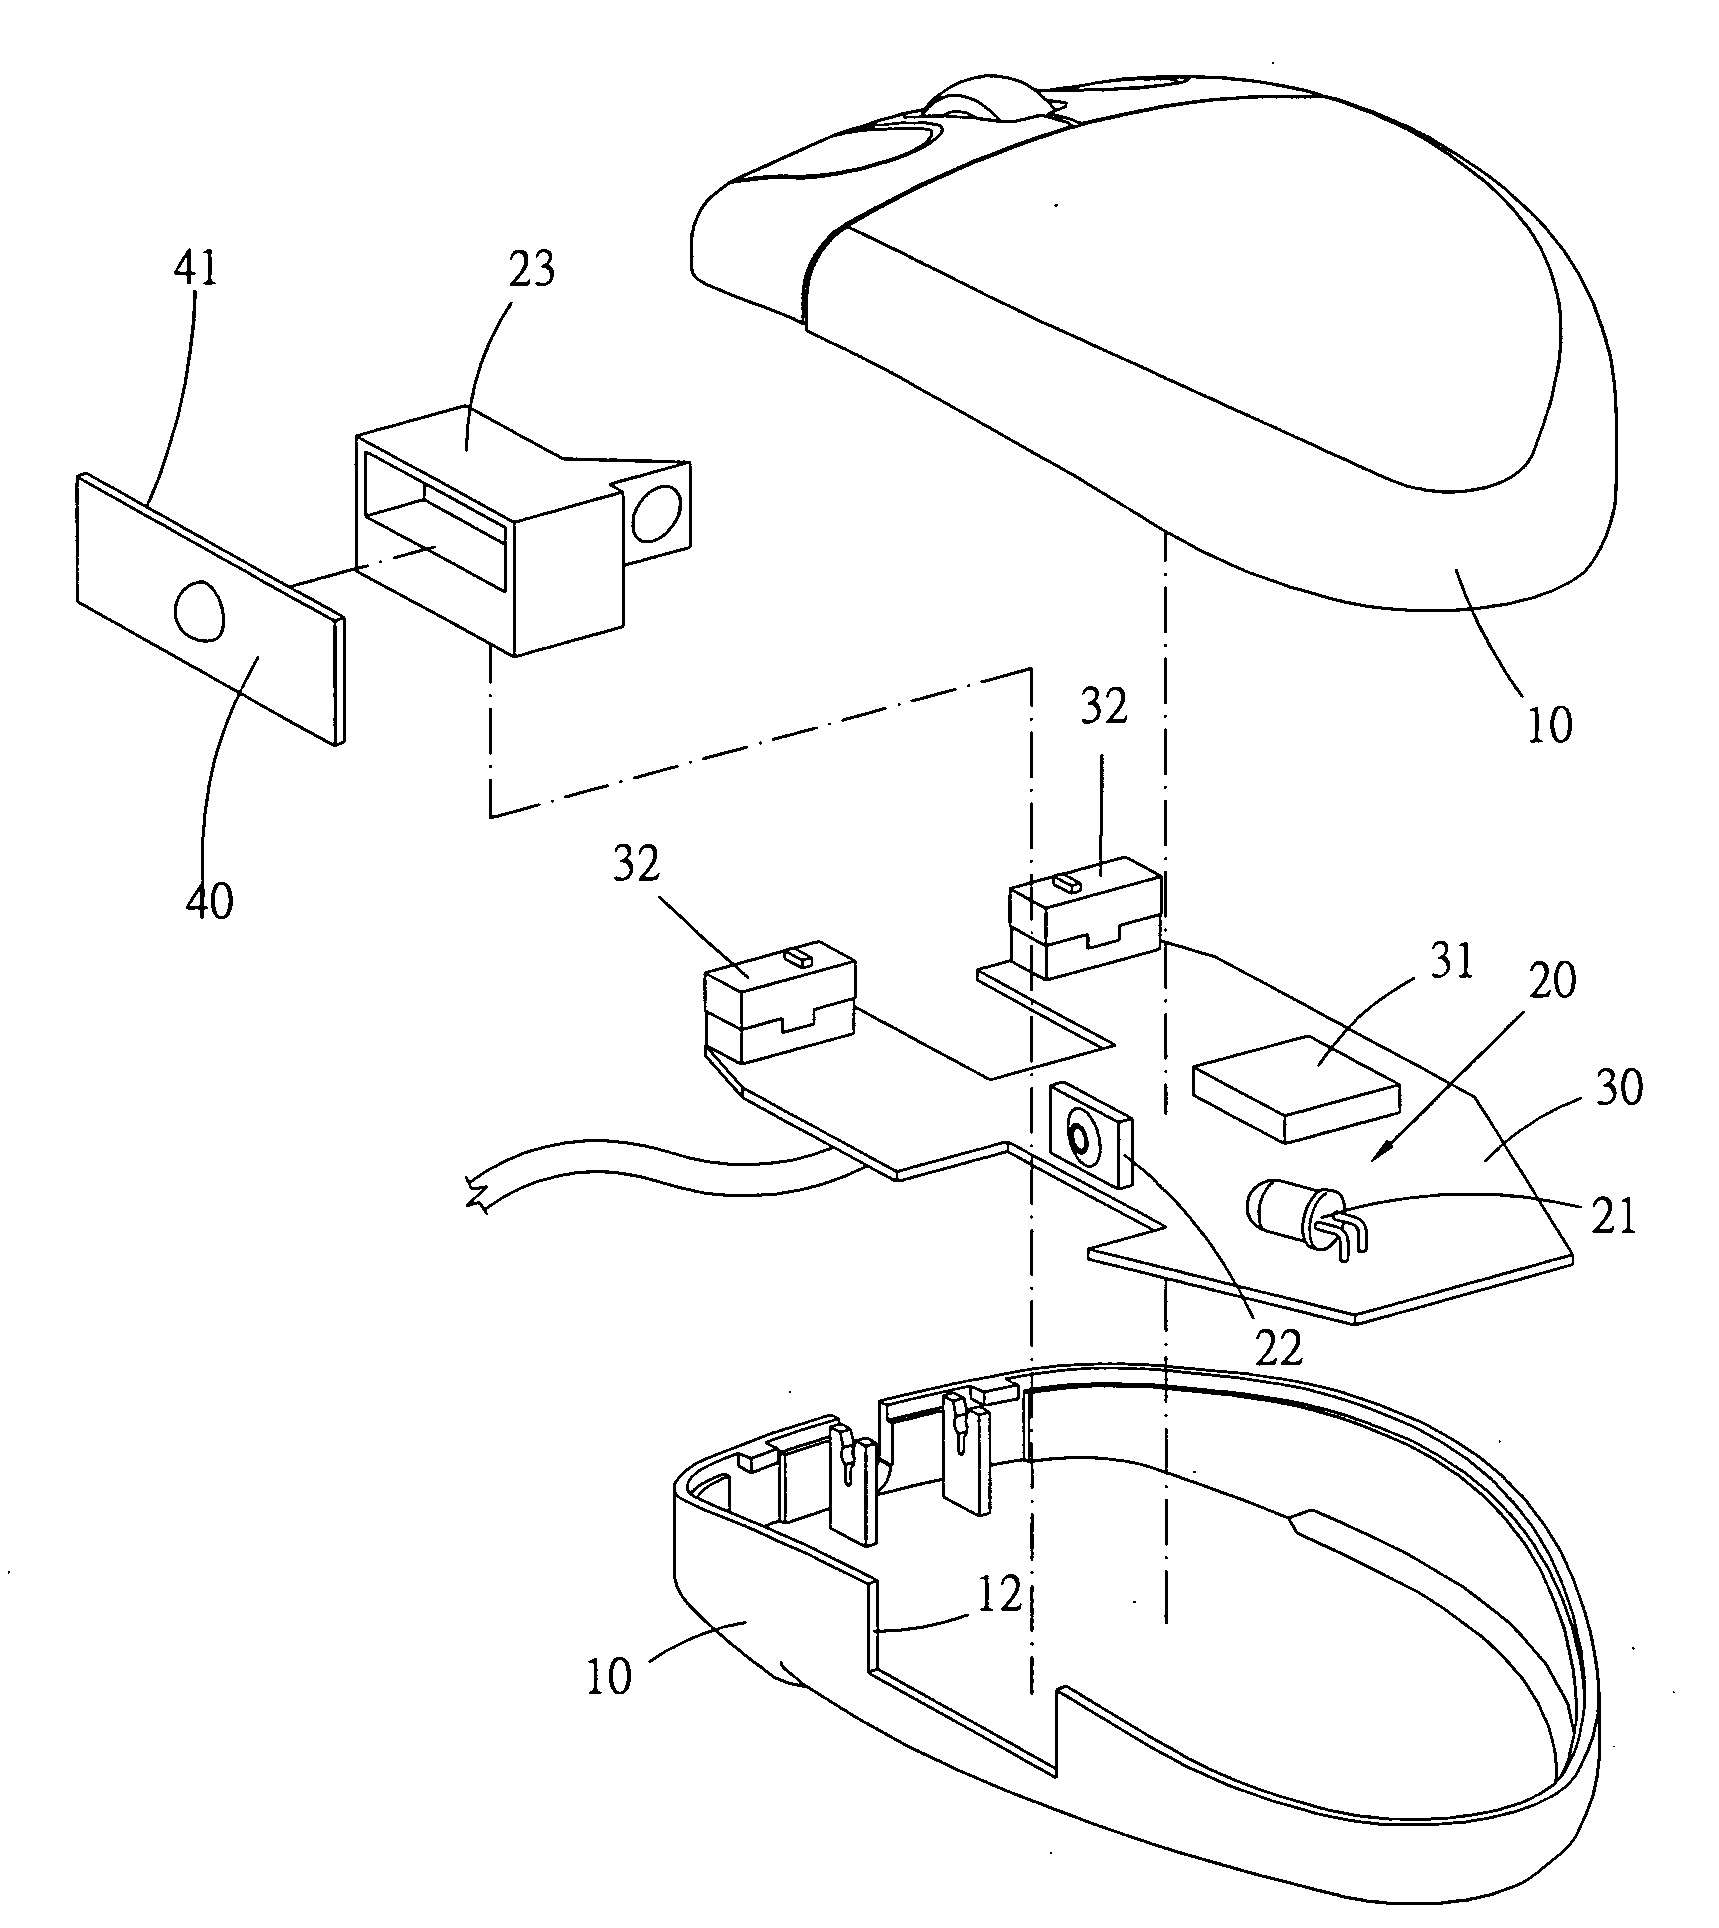 patent us20080084391 - mouse